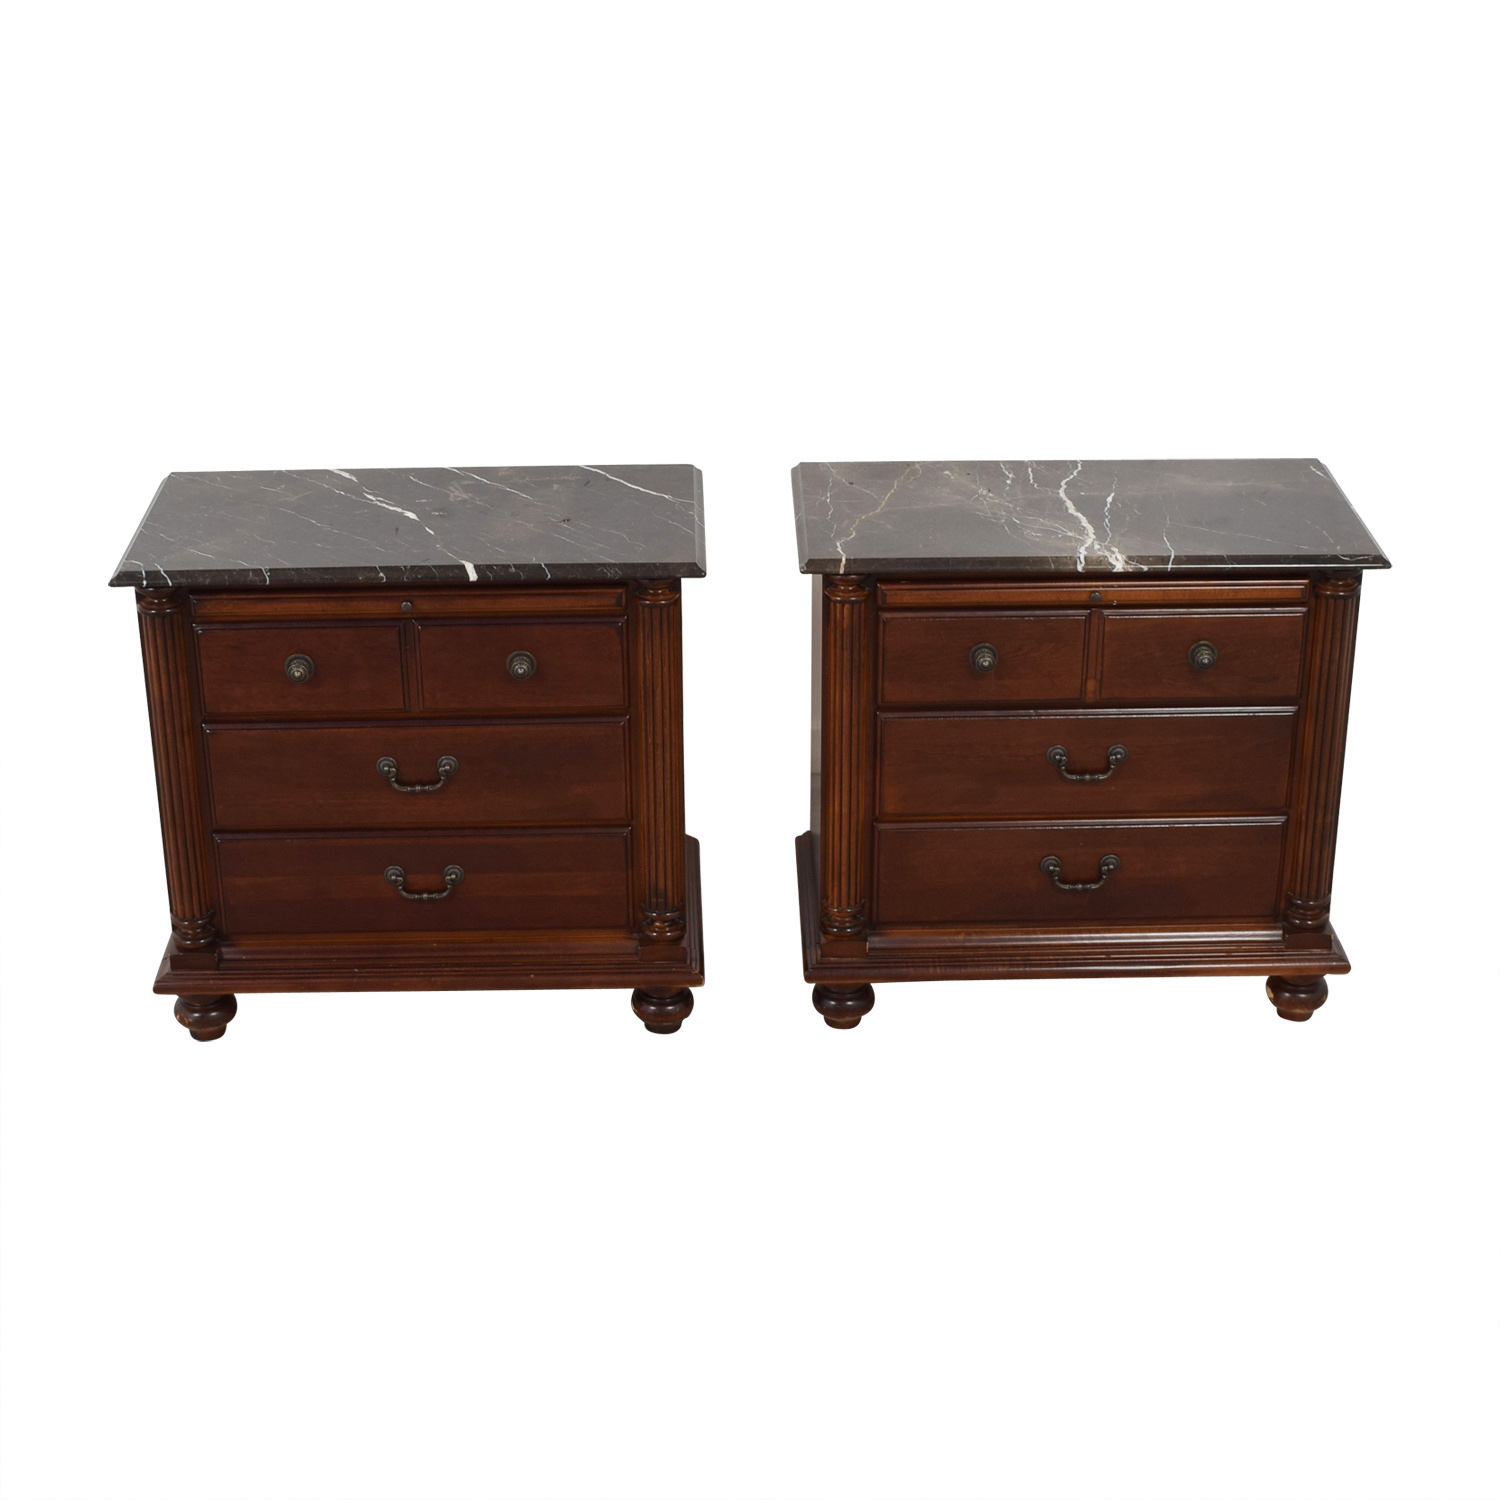 Hooker Hooker Marble Top Three-Drawer Night Stands Multi